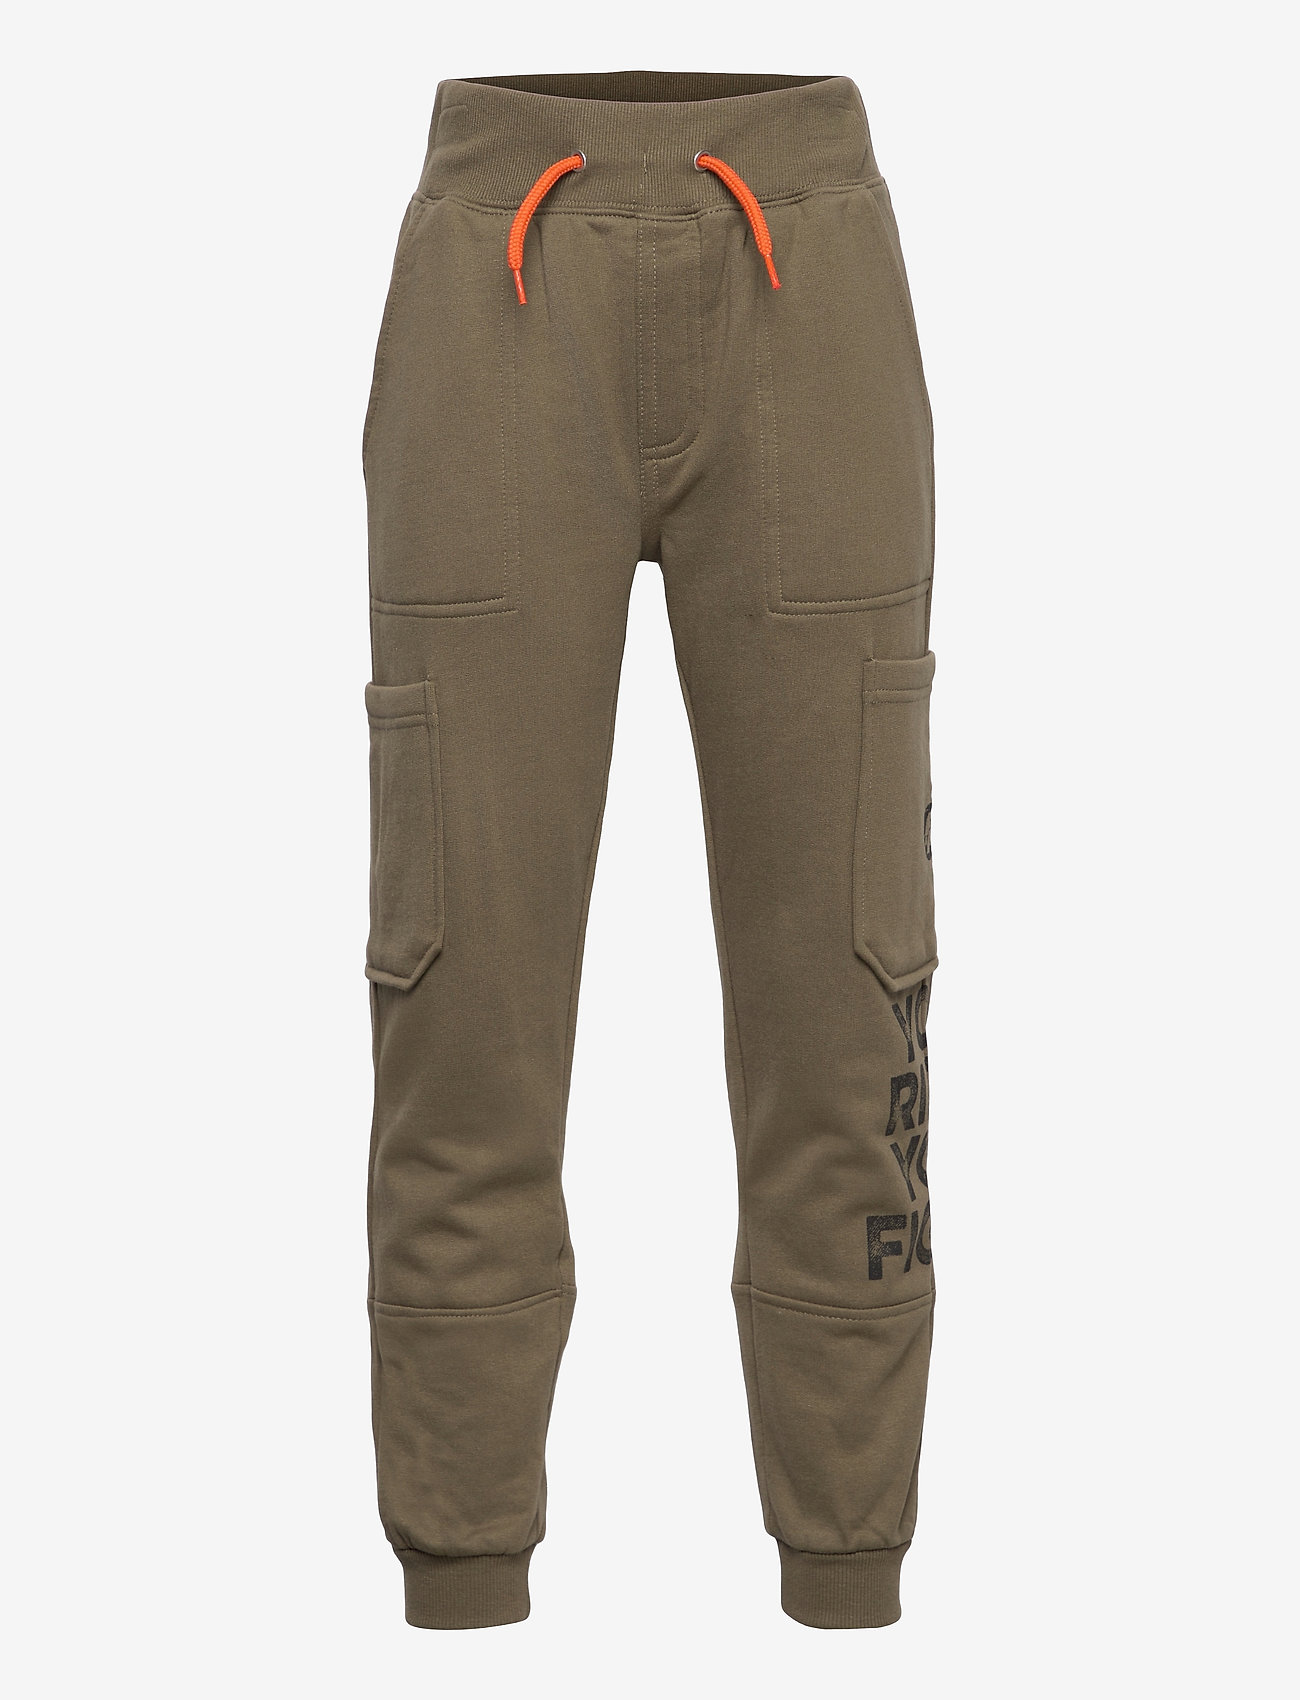 Fast & Furious - TROUSER - trousers - green - 0